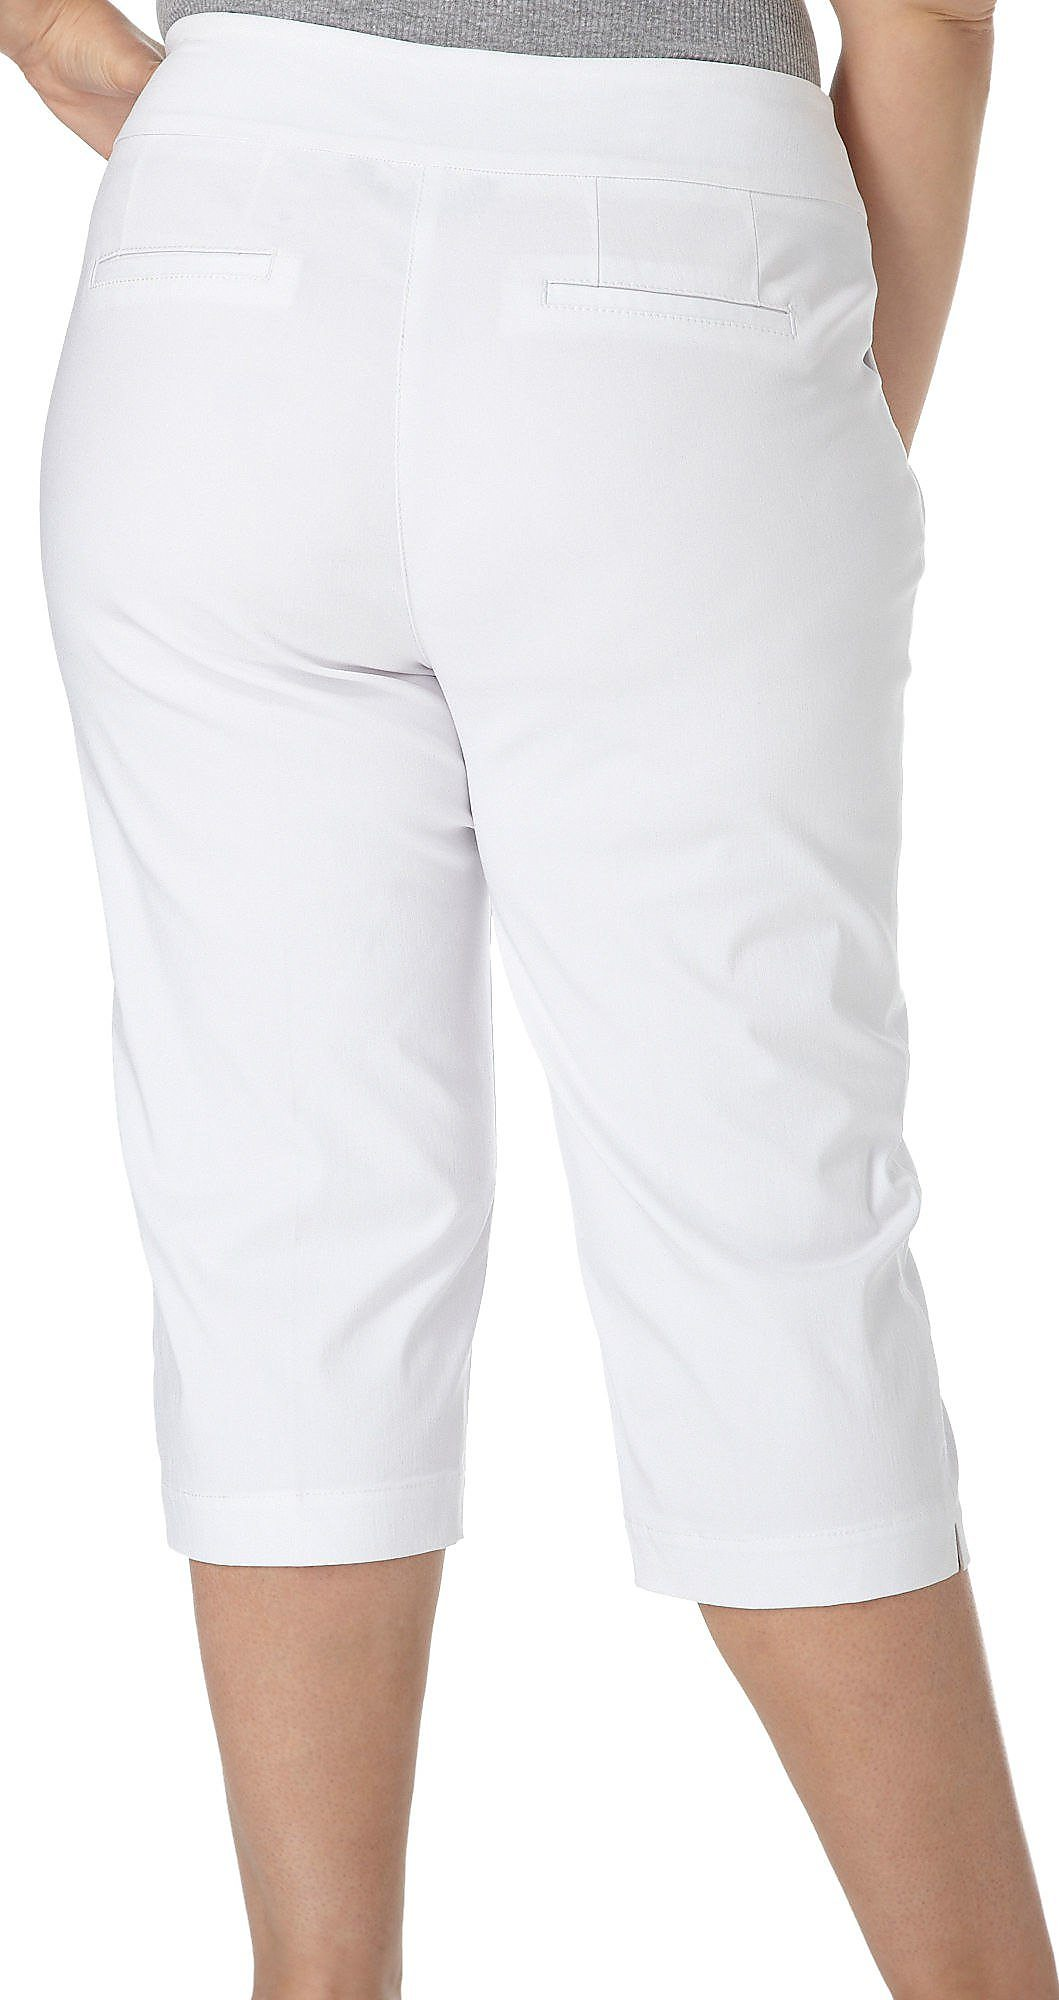 35a0e70961fdd Alia Plus Tech Stretch Tummy Trim Capris 18w White. About this product.  Picture 1 of 4  Picture 2 of 4  Picture 3 of 4 ...